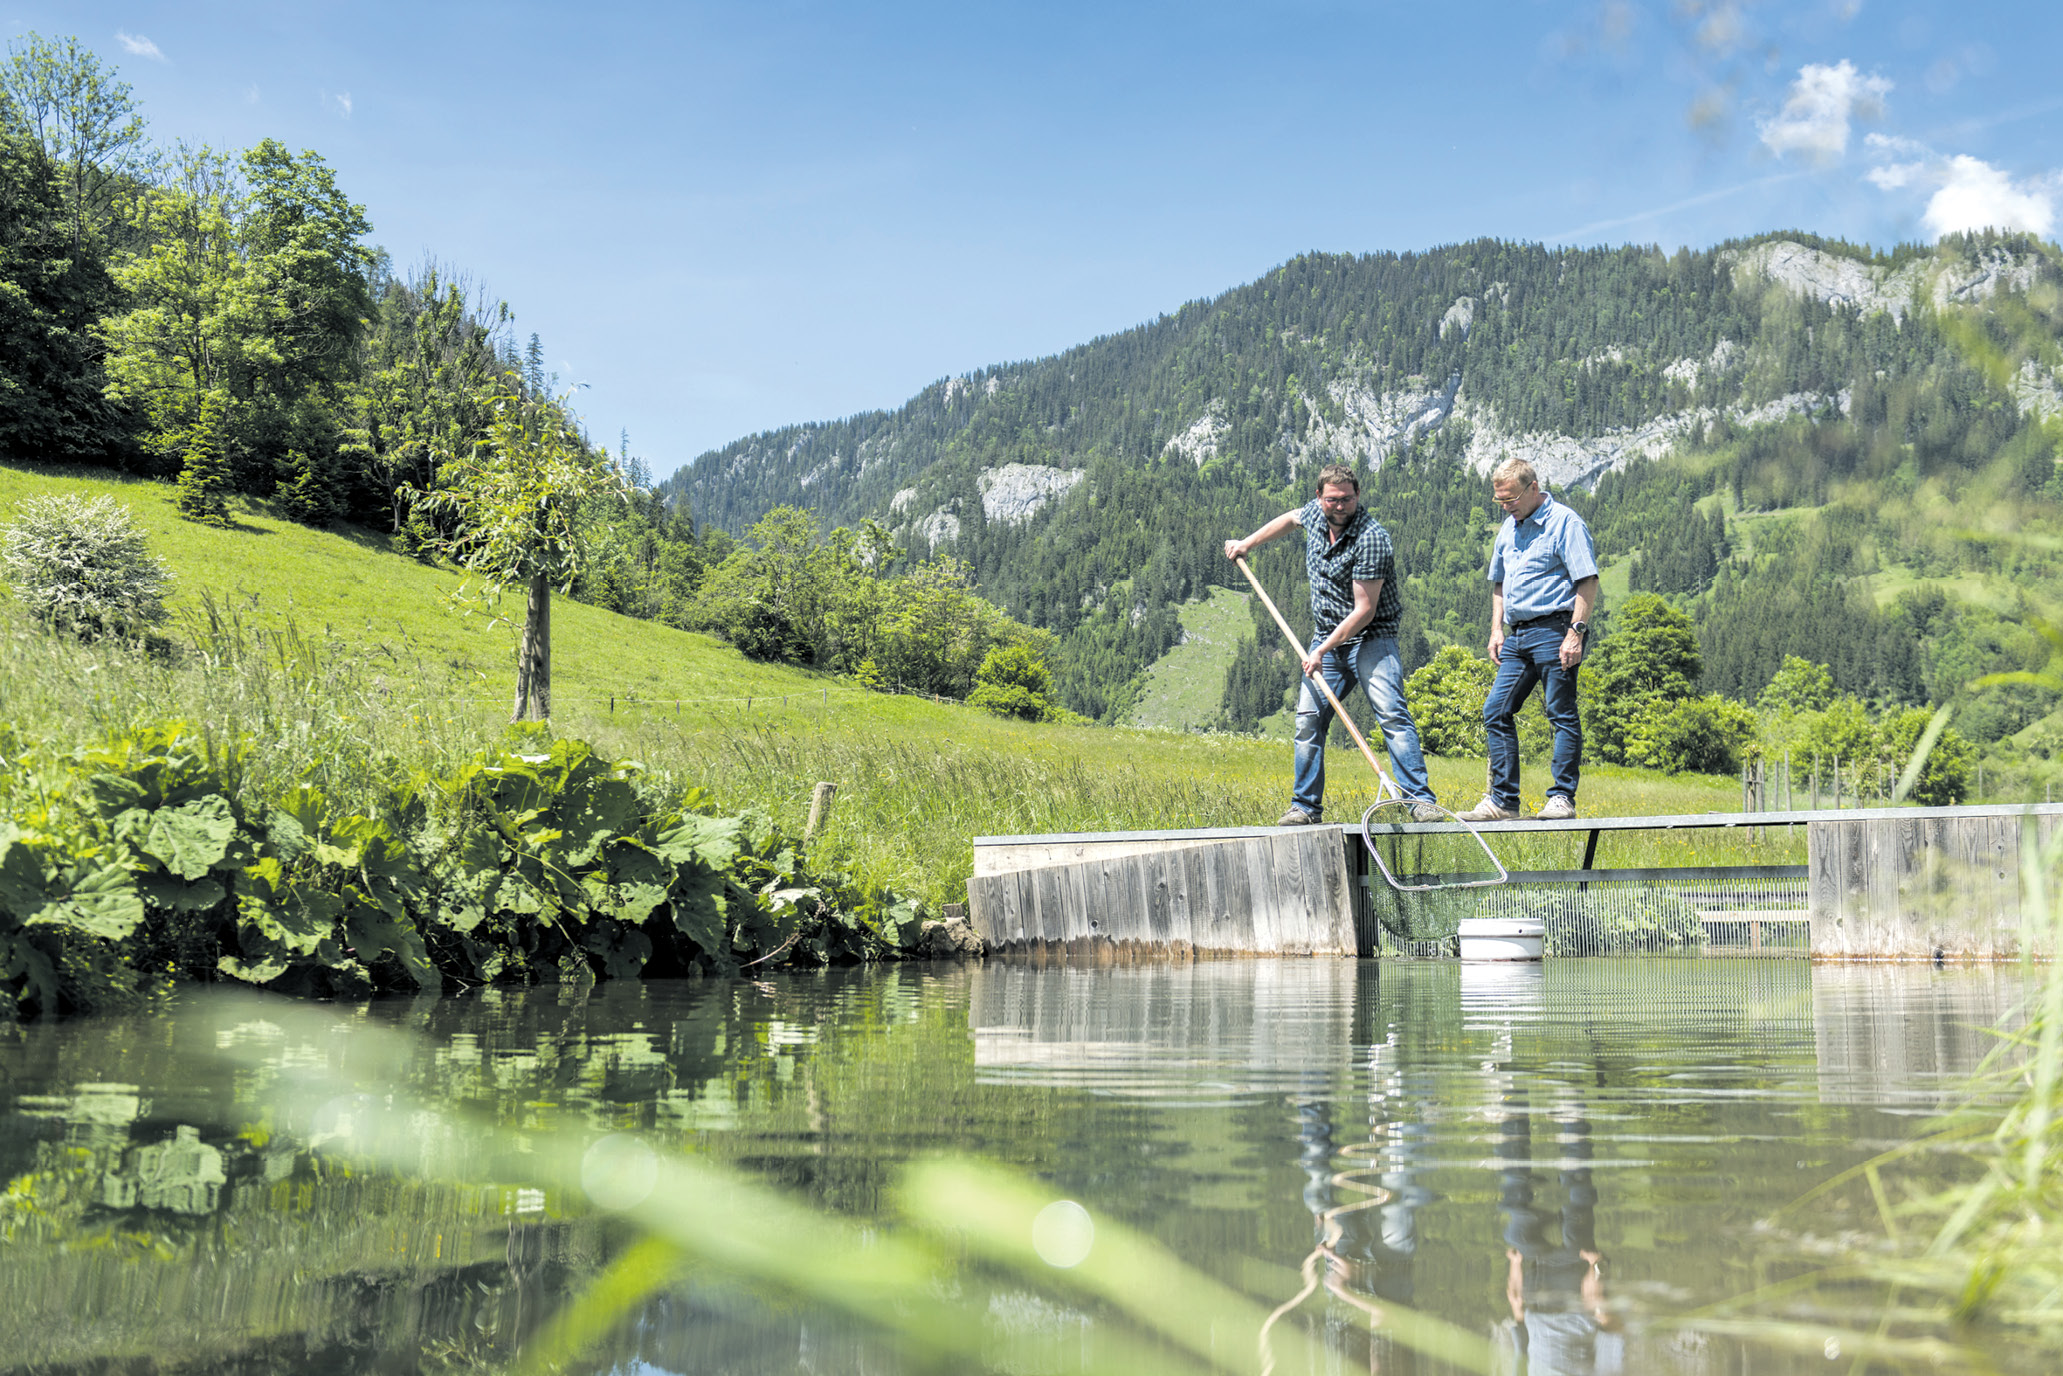 Fitte fische aus mariazell mnews for Fische in teichen